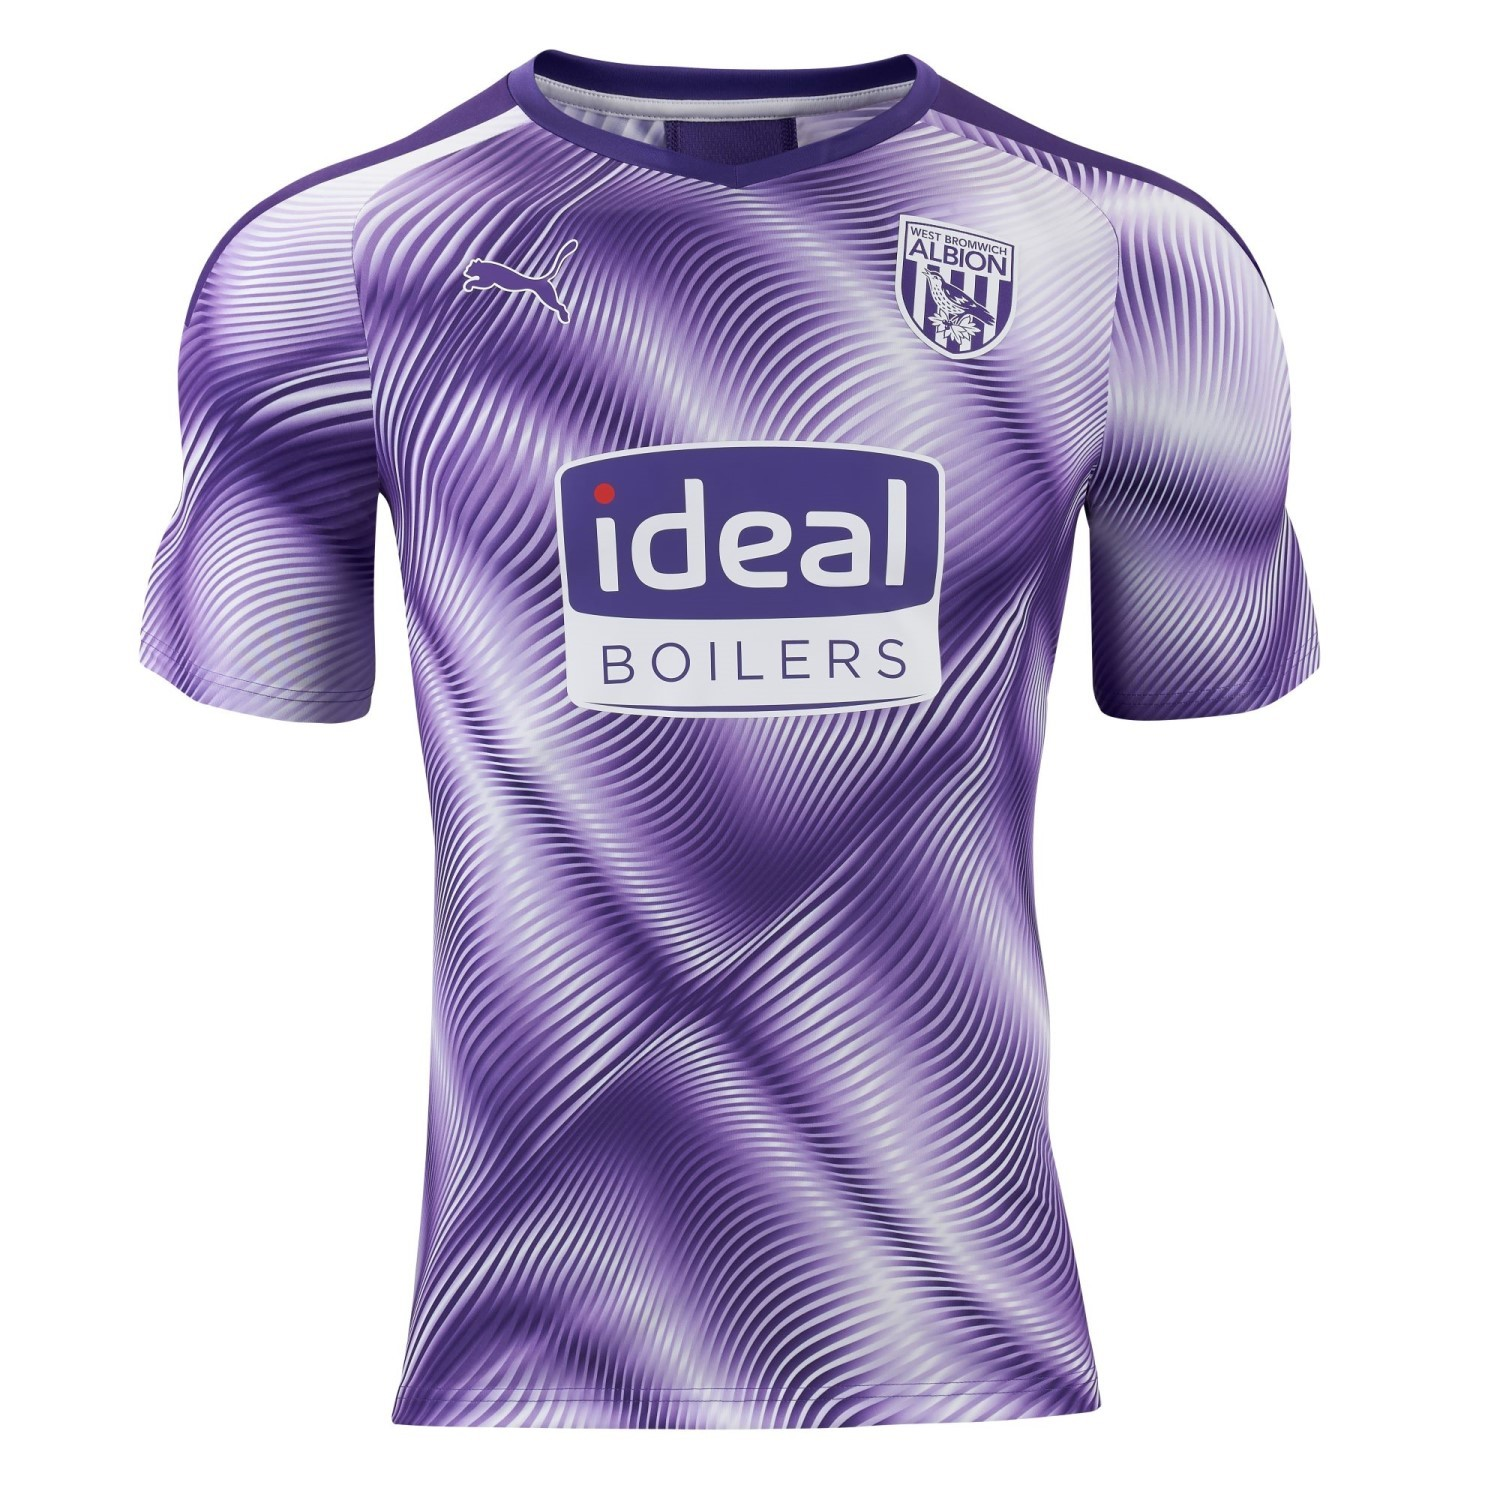 Gallery New Albion Third Kit Revealed Express Star